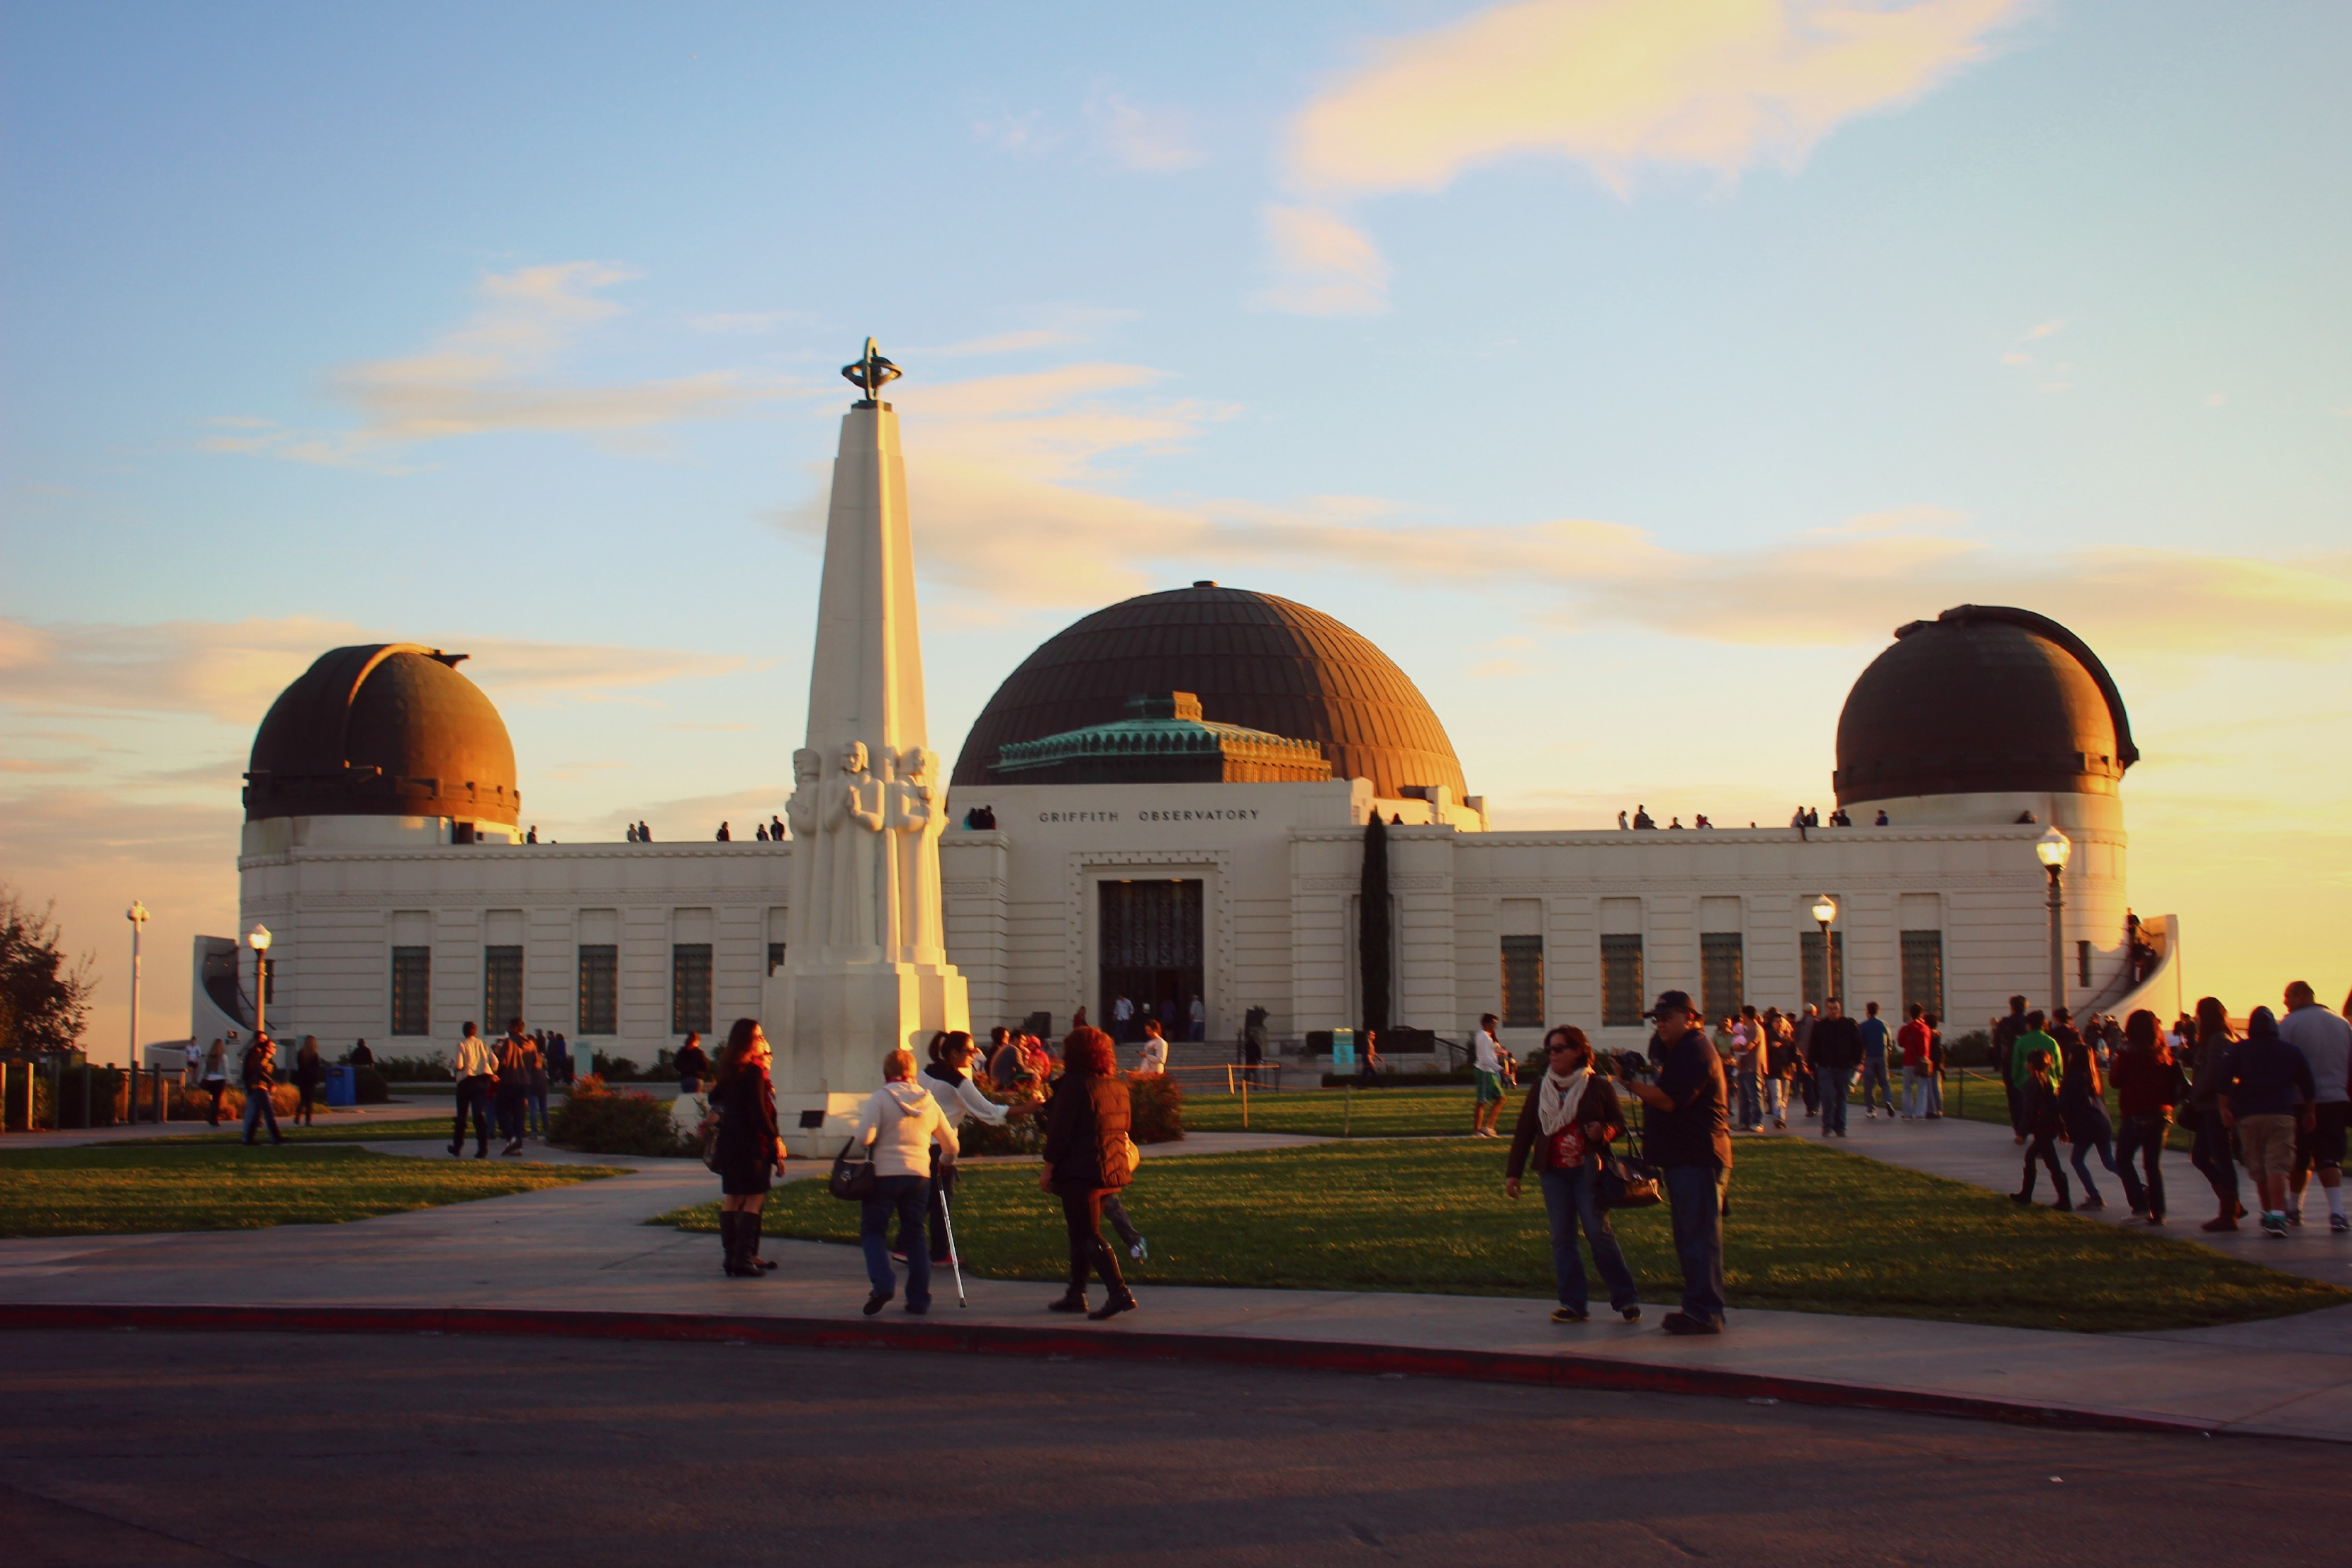 photo essay exploring los angeles a tourist bon voyage we were lucky to grab a parking spot in the griffith observatory lot just before sunset i d suggest arriving a couple hours earlier